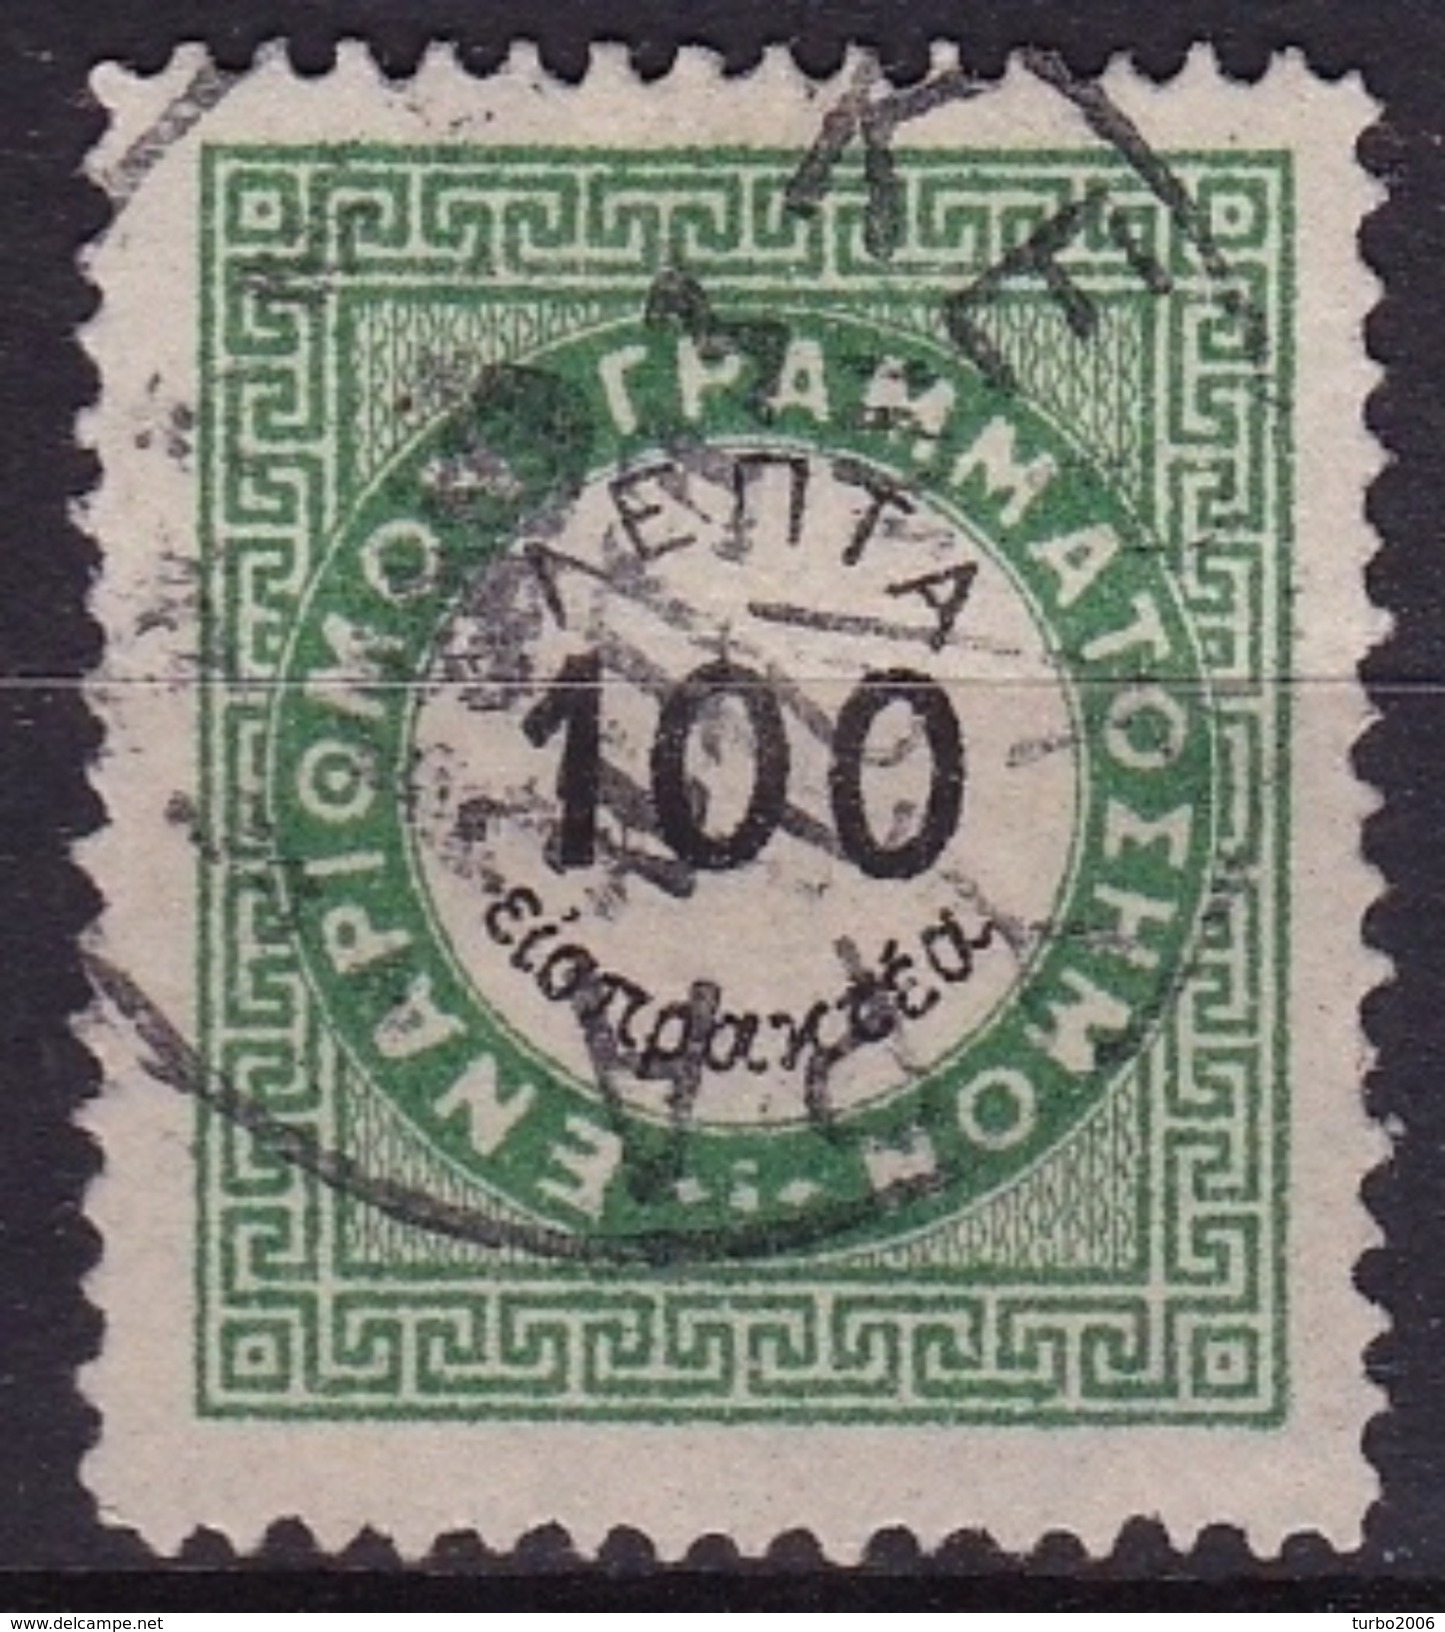 GREECE 1876 Postage Due Vienna Issue II Large Capitals 100  L. Green / Black Perforation 12½  Vl. D 23 B - Strafport